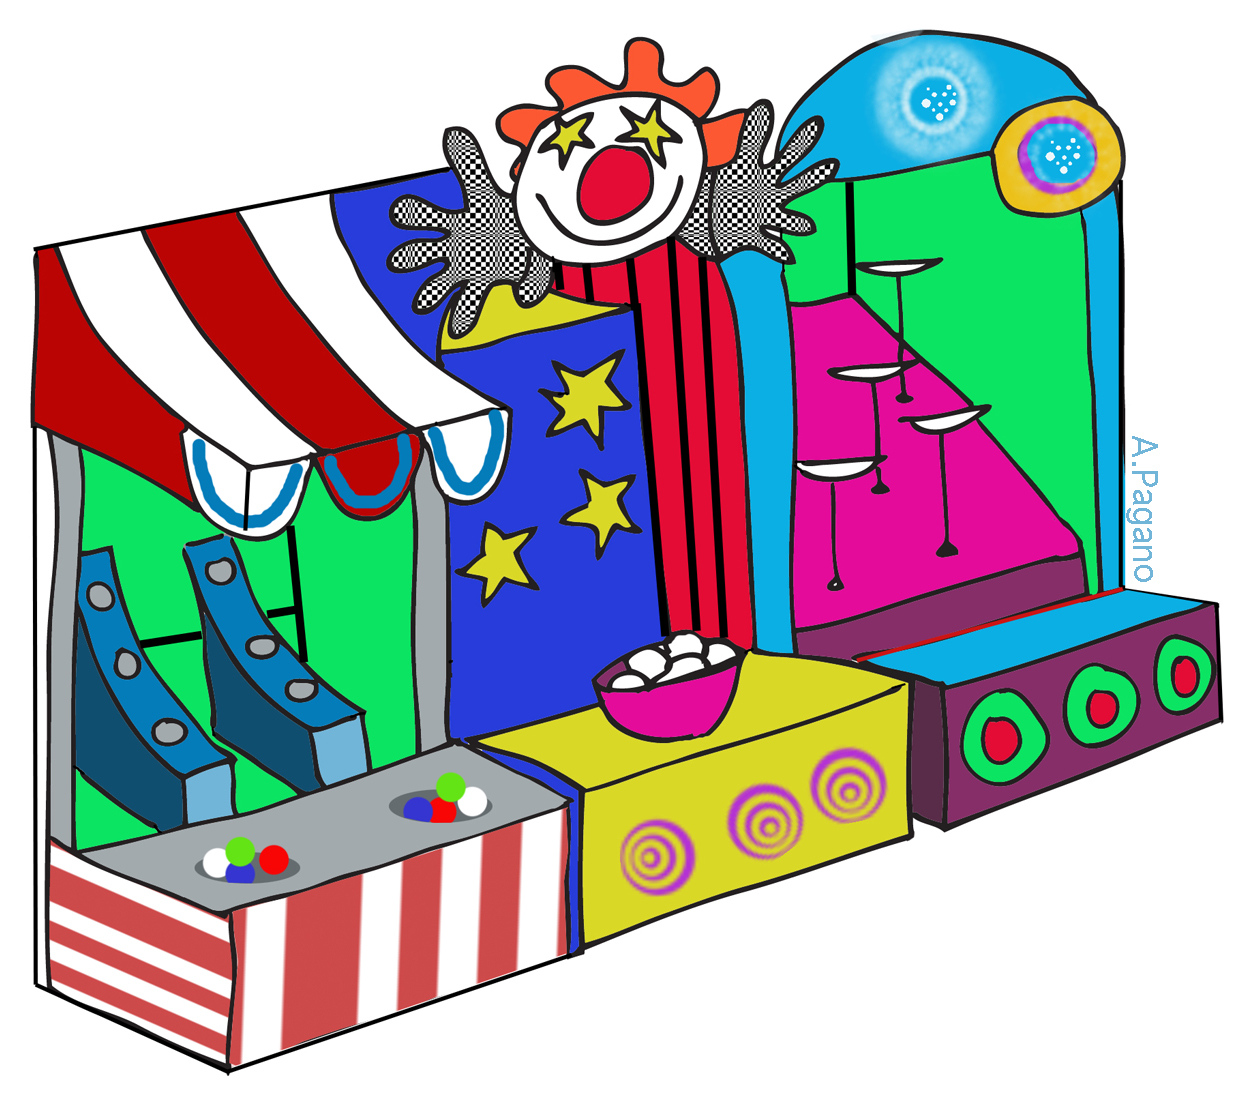 Free carnival games clipart jpg free library Carnival Clipart | Free download best Carnival Clipart on ClipArtMag.com jpg free library